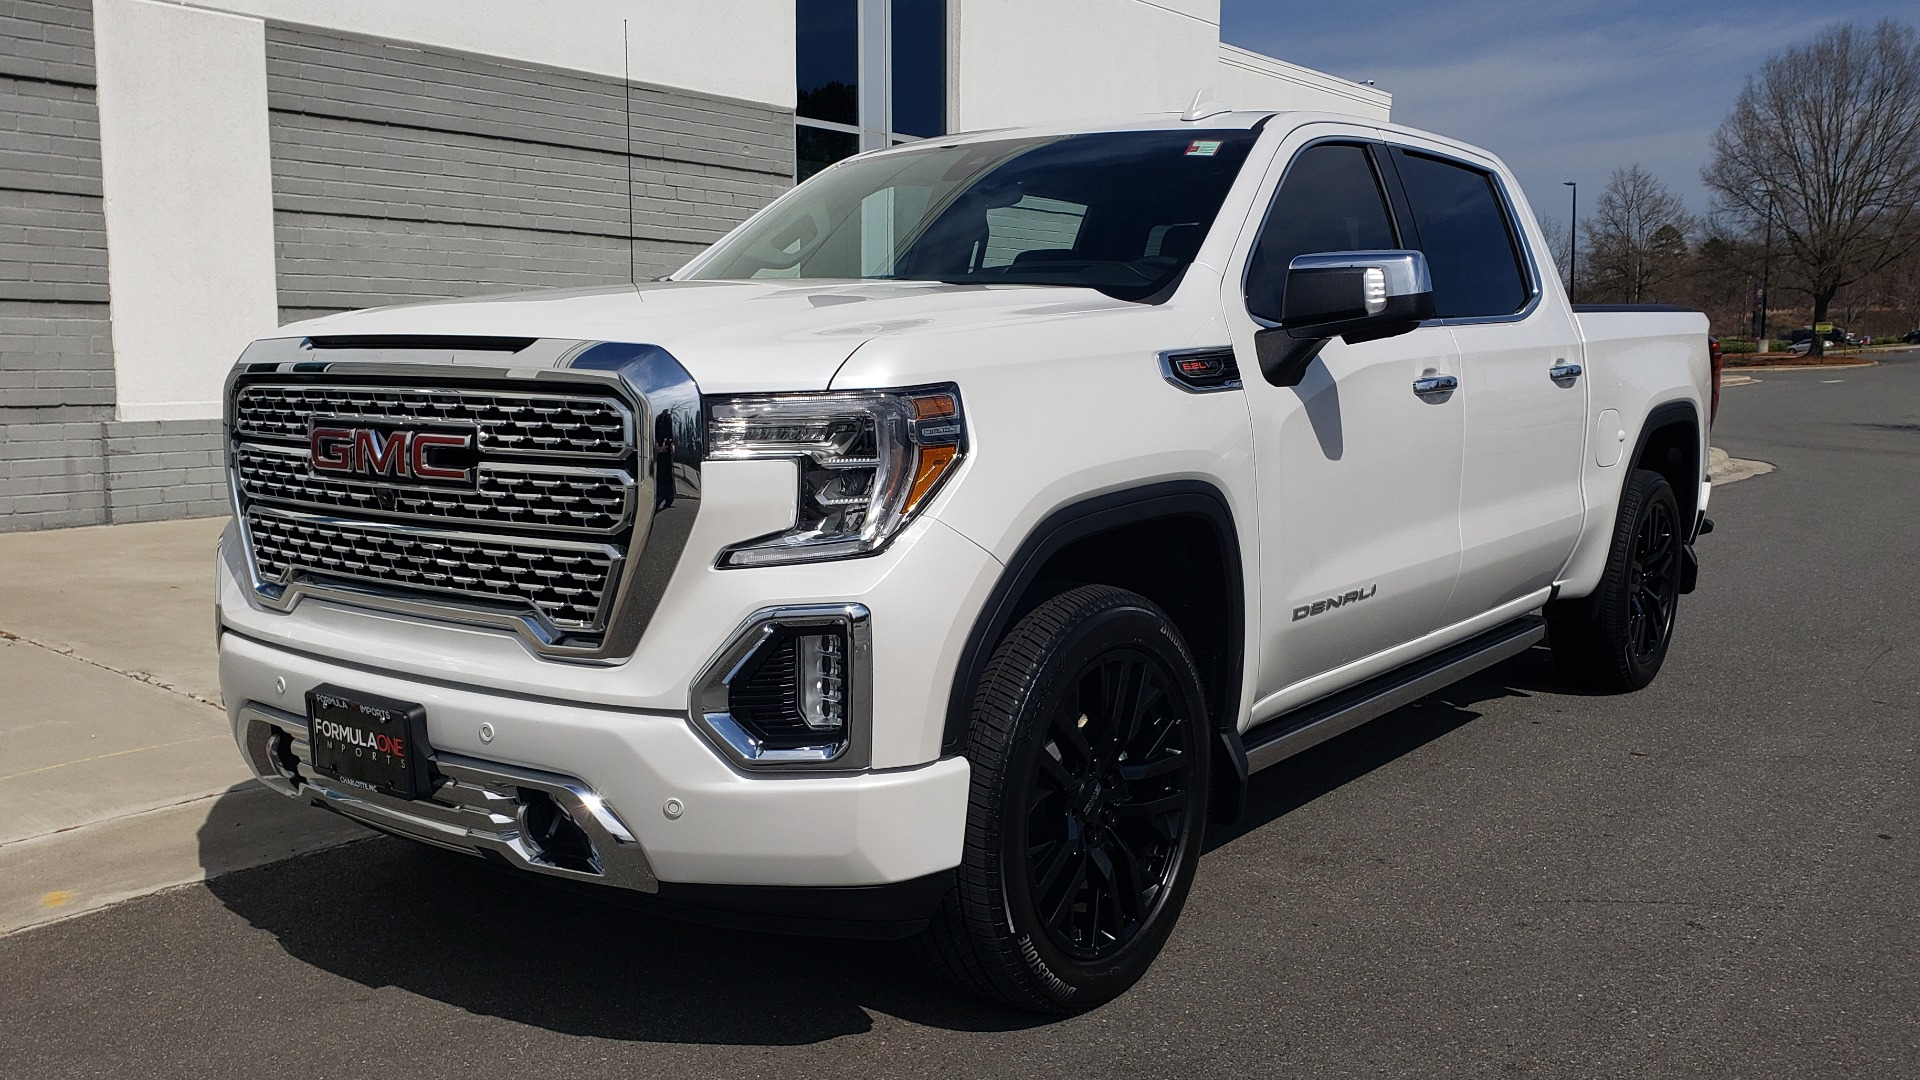 Used 2020 GMC SIERRA 1500 DENALI 4X4 CREWCAB 6.2L V8 / TECH / NAV / SUNROOF / DRVR ALERT II for sale Sold at Formula Imports in Charlotte NC 28227 1